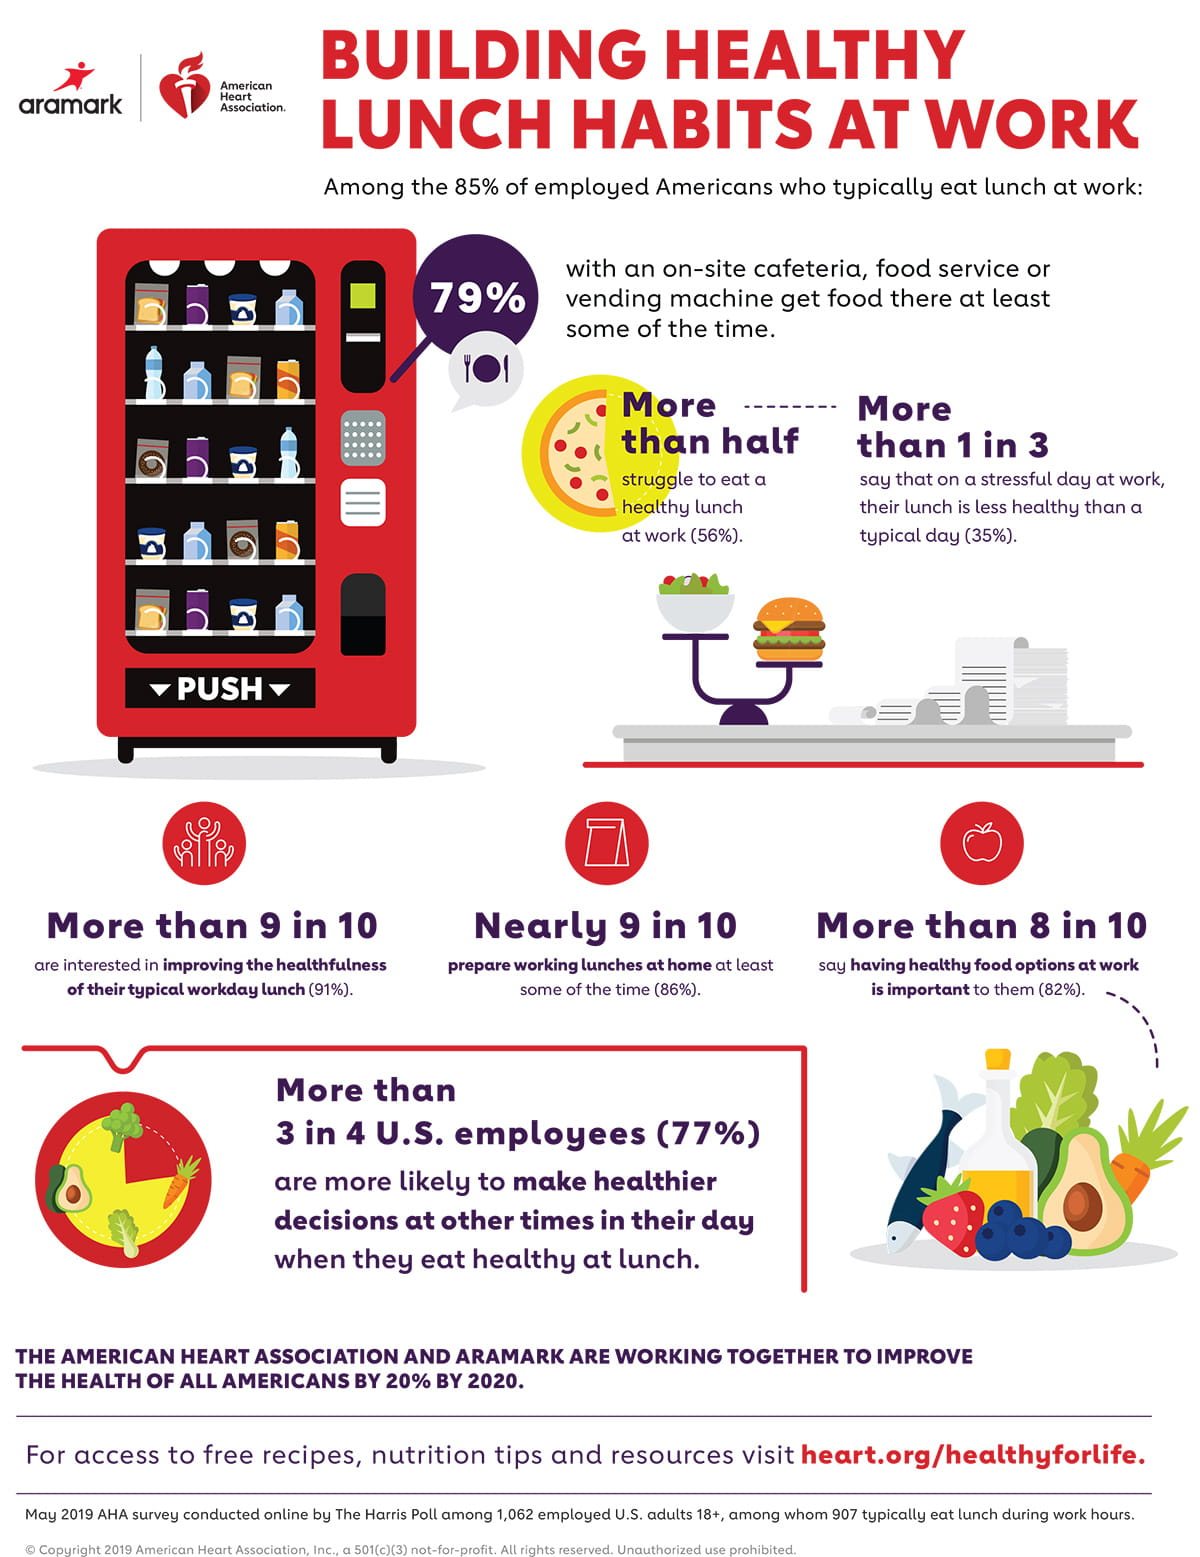 Building Healthy Lunch Habits at Work Infographic